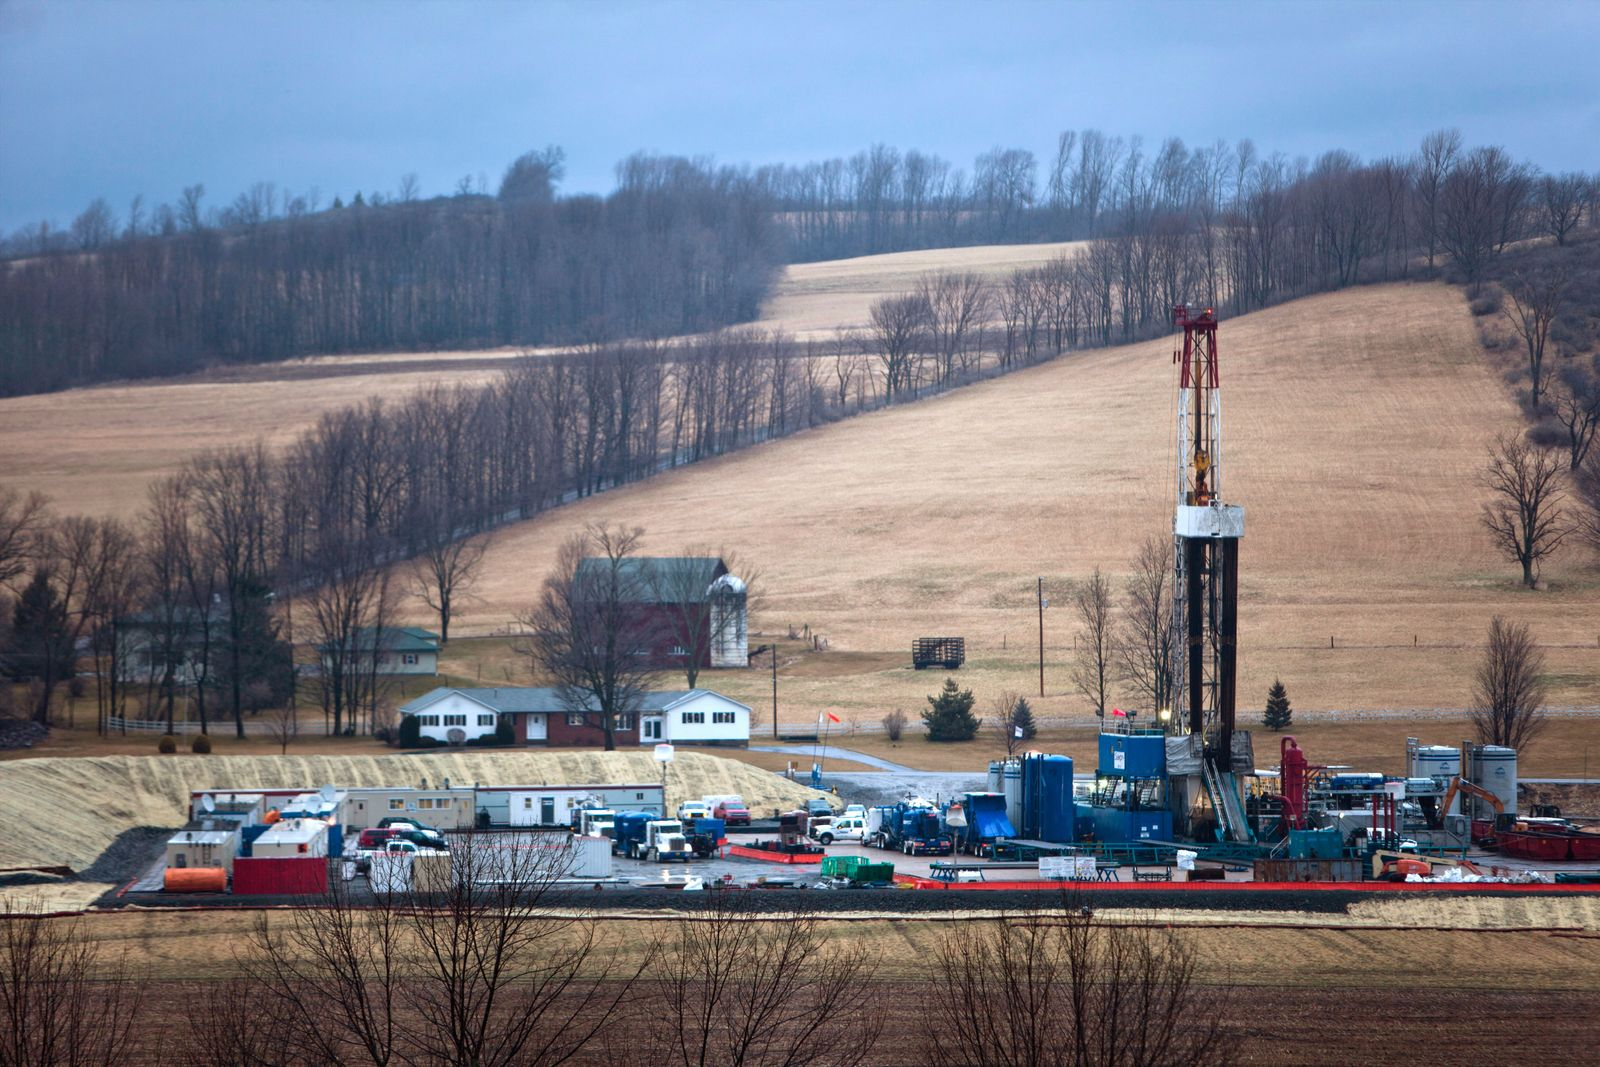 öl saudis fracking usa